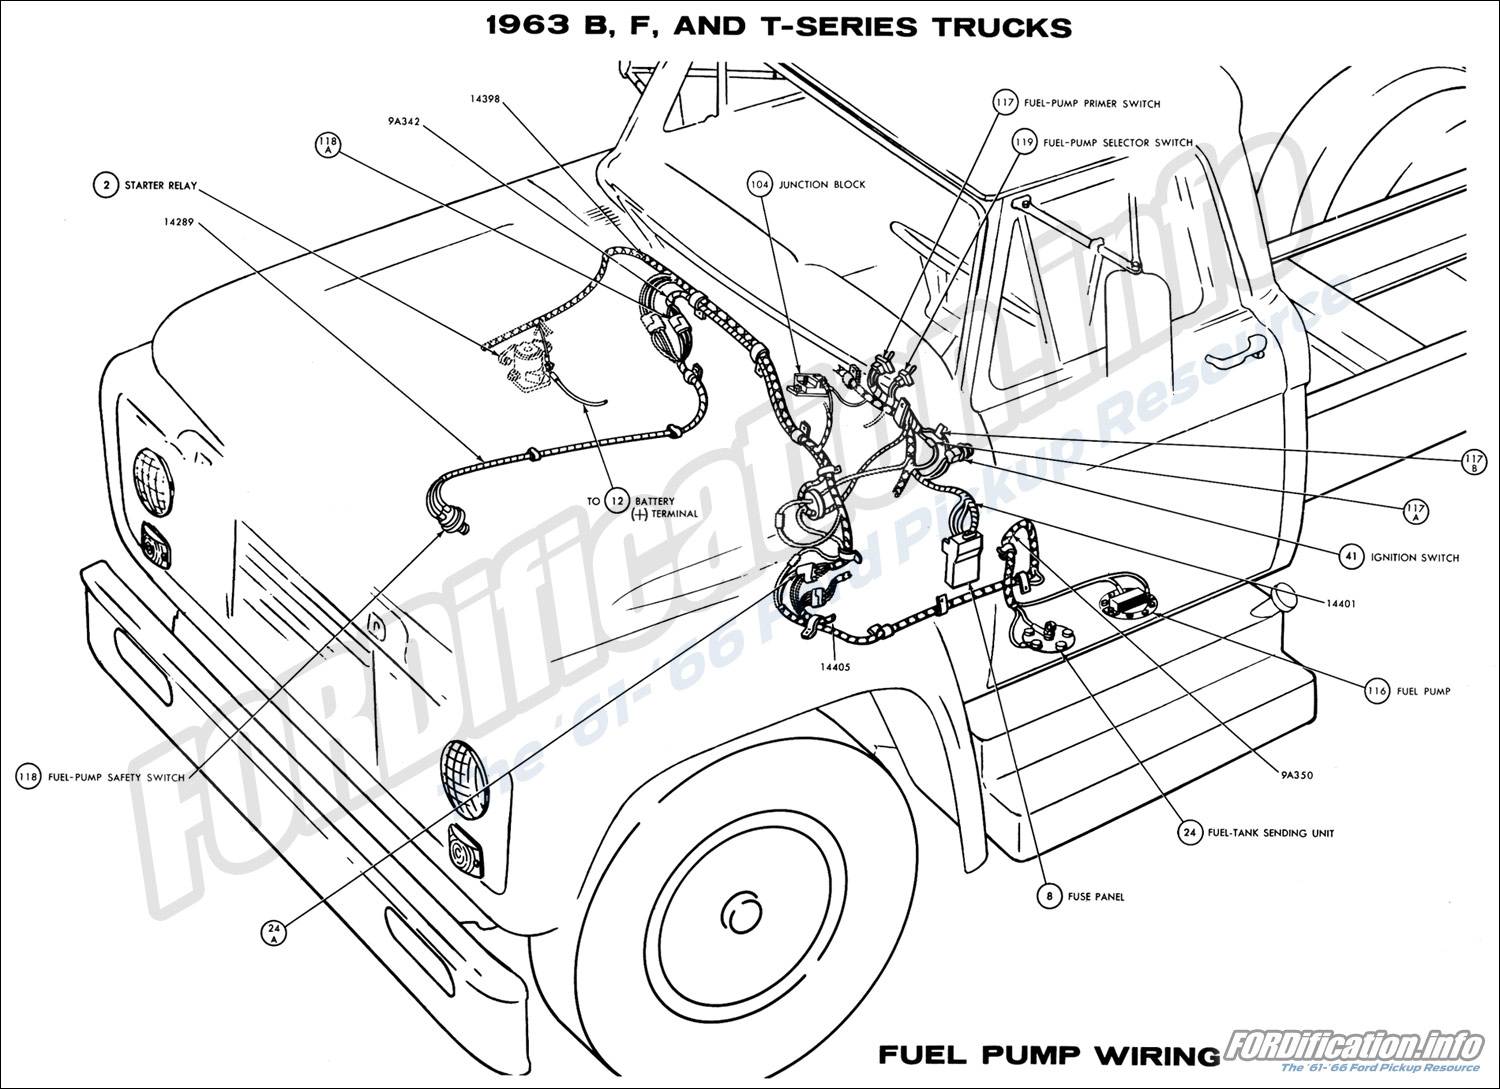 1970 Ford Truck Wiring Diagrams Schematic F100 Pickup Trusted Diagram E 350